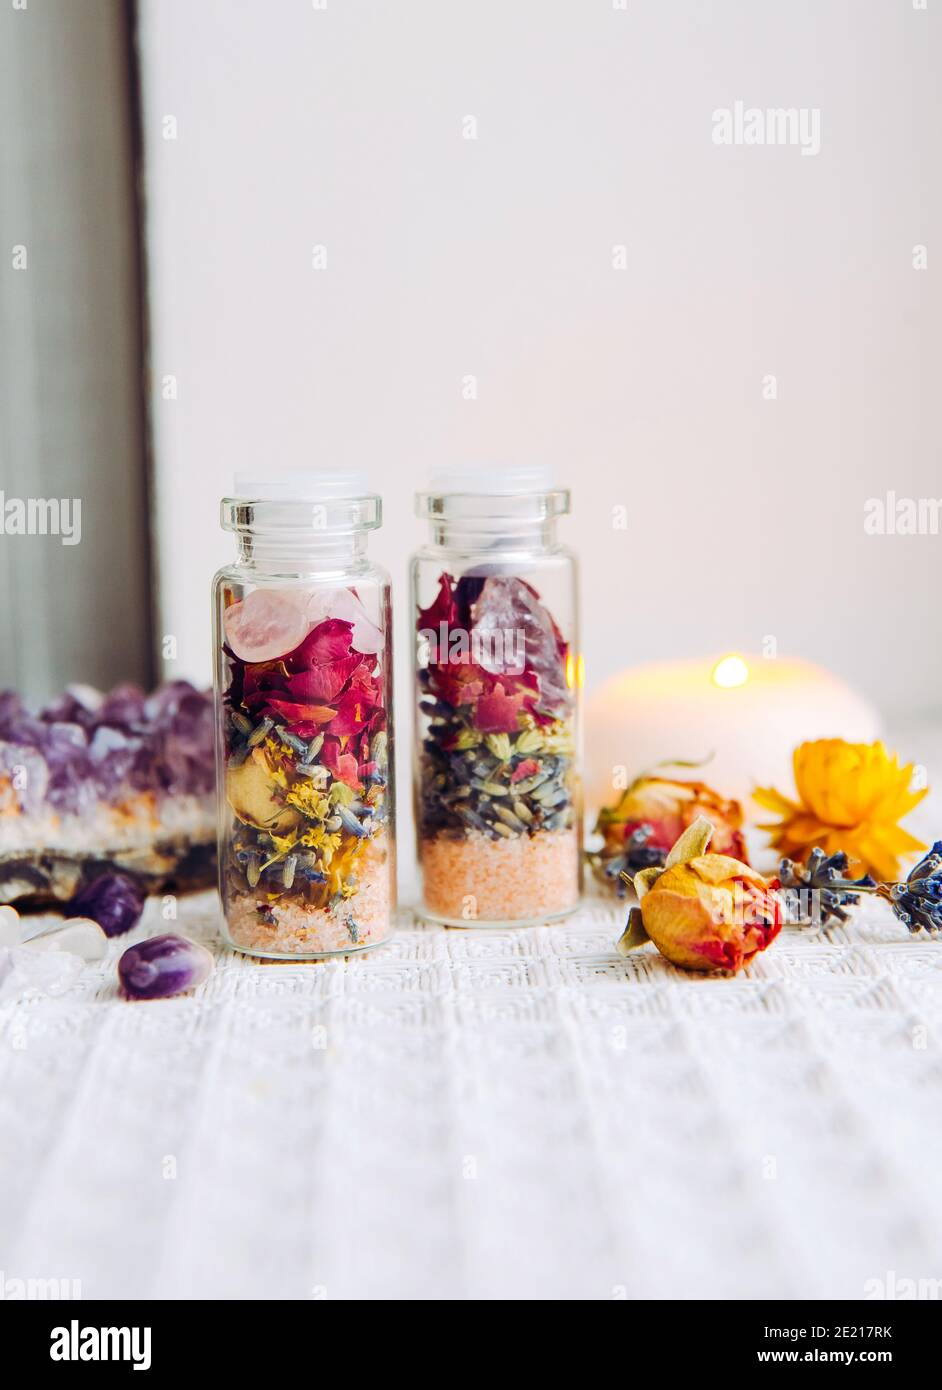 Handmade spell jar bottles with good intentions for home protection and inner balance. Filled with Himalayan rock salt, dried herbs flowers. Stock Photo